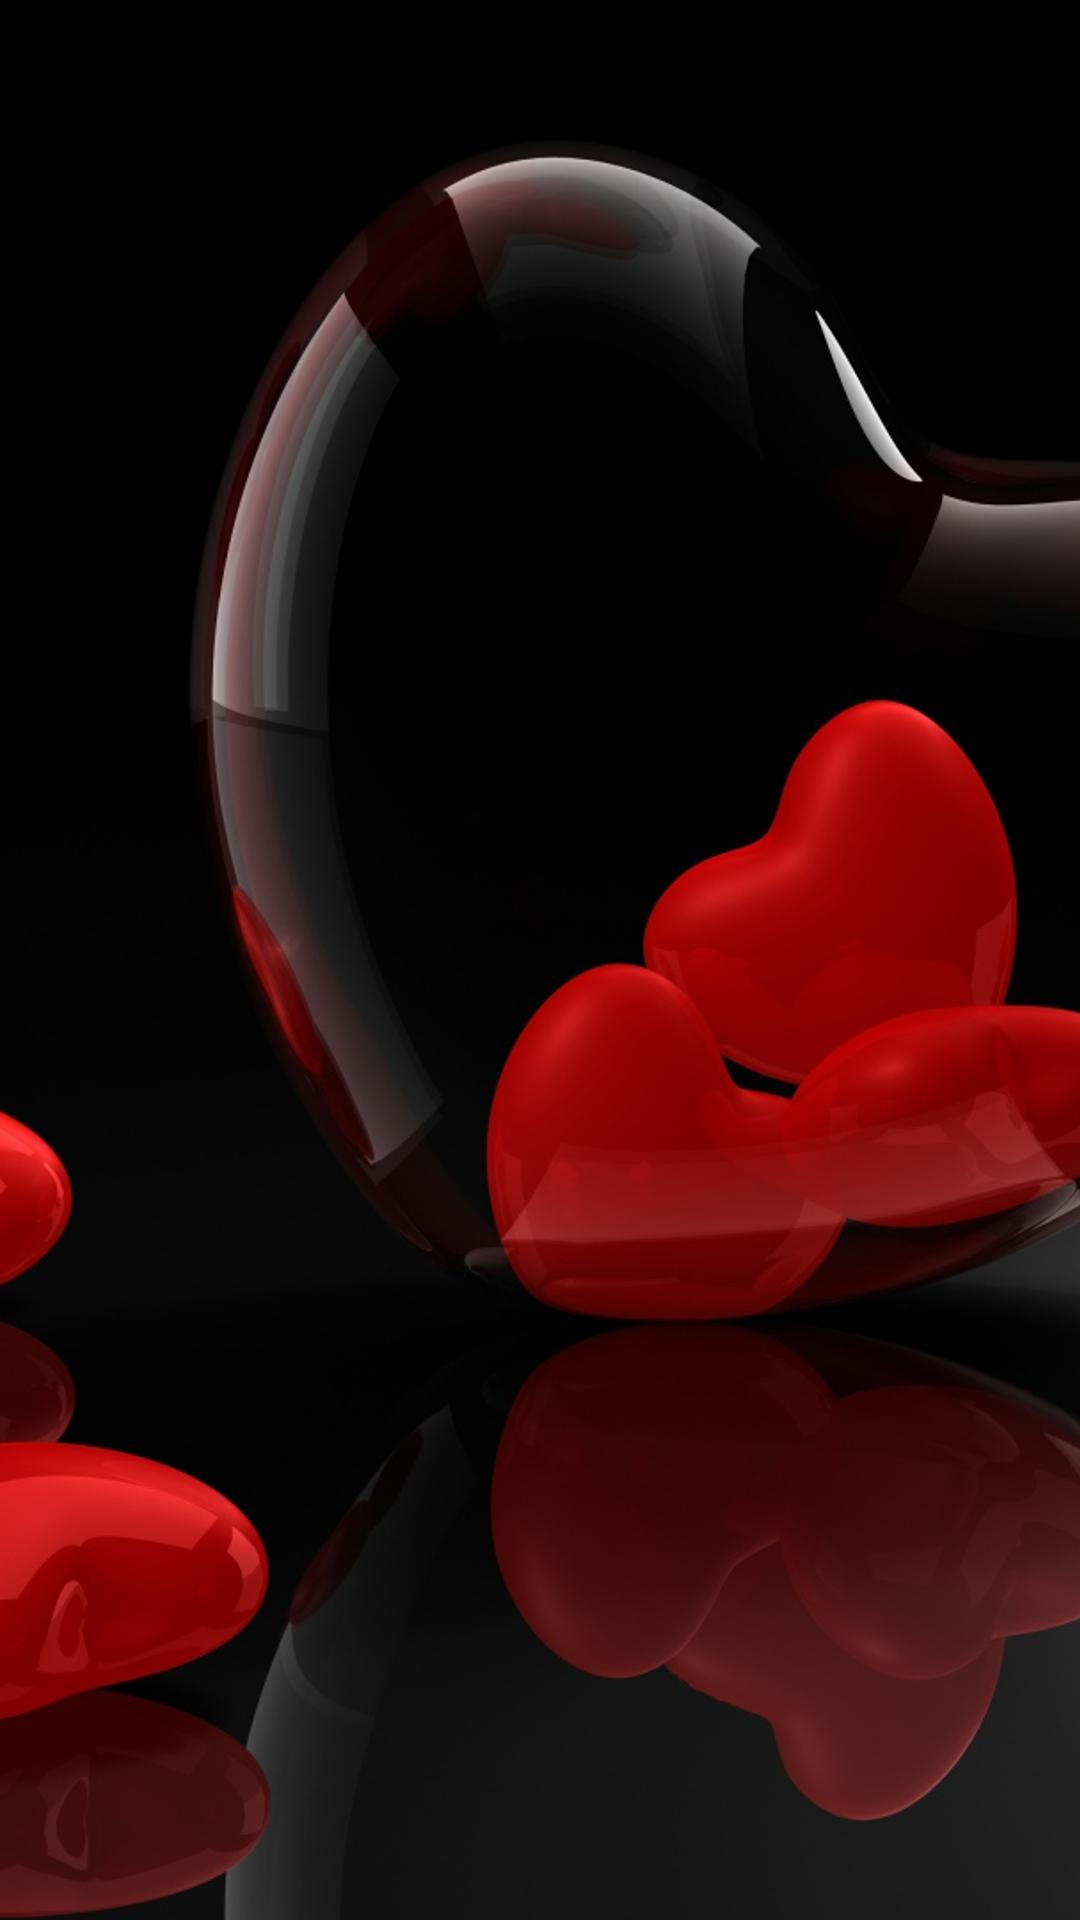 Download Wallpaper 1080x1920 Many 3D Red Hearts On Black Background